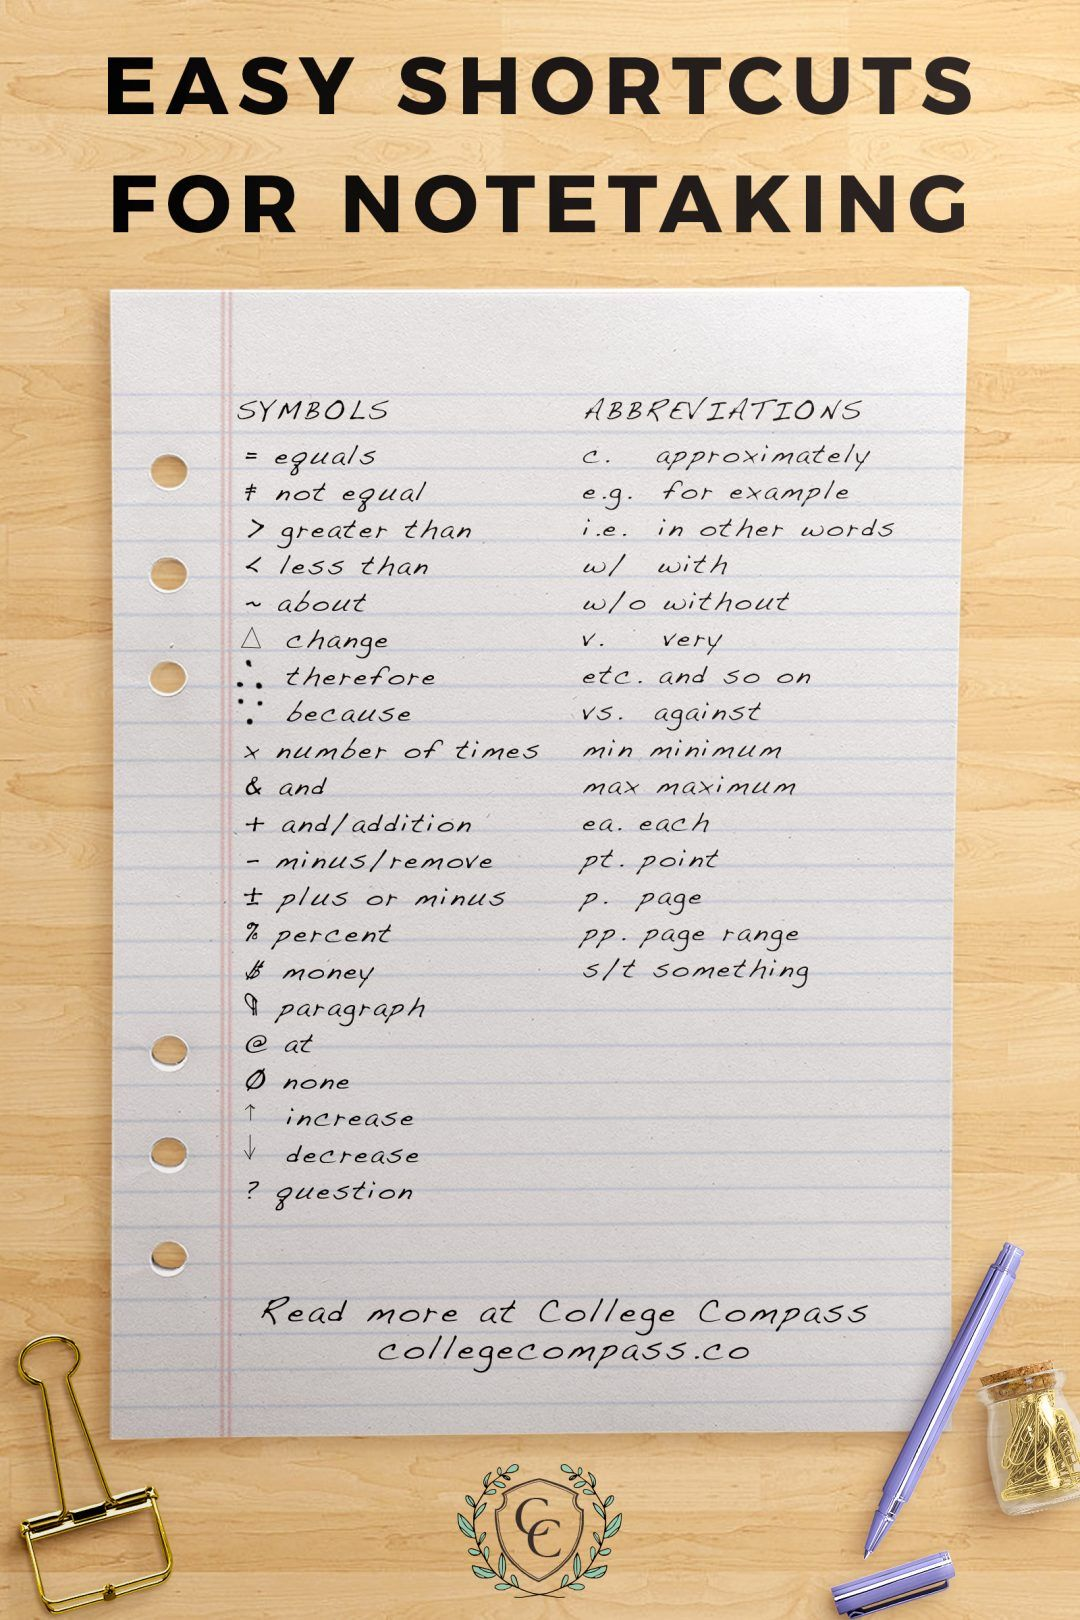 How to Take Cornell Notes (Plus a Free Worksheet Pack!) | College Compass